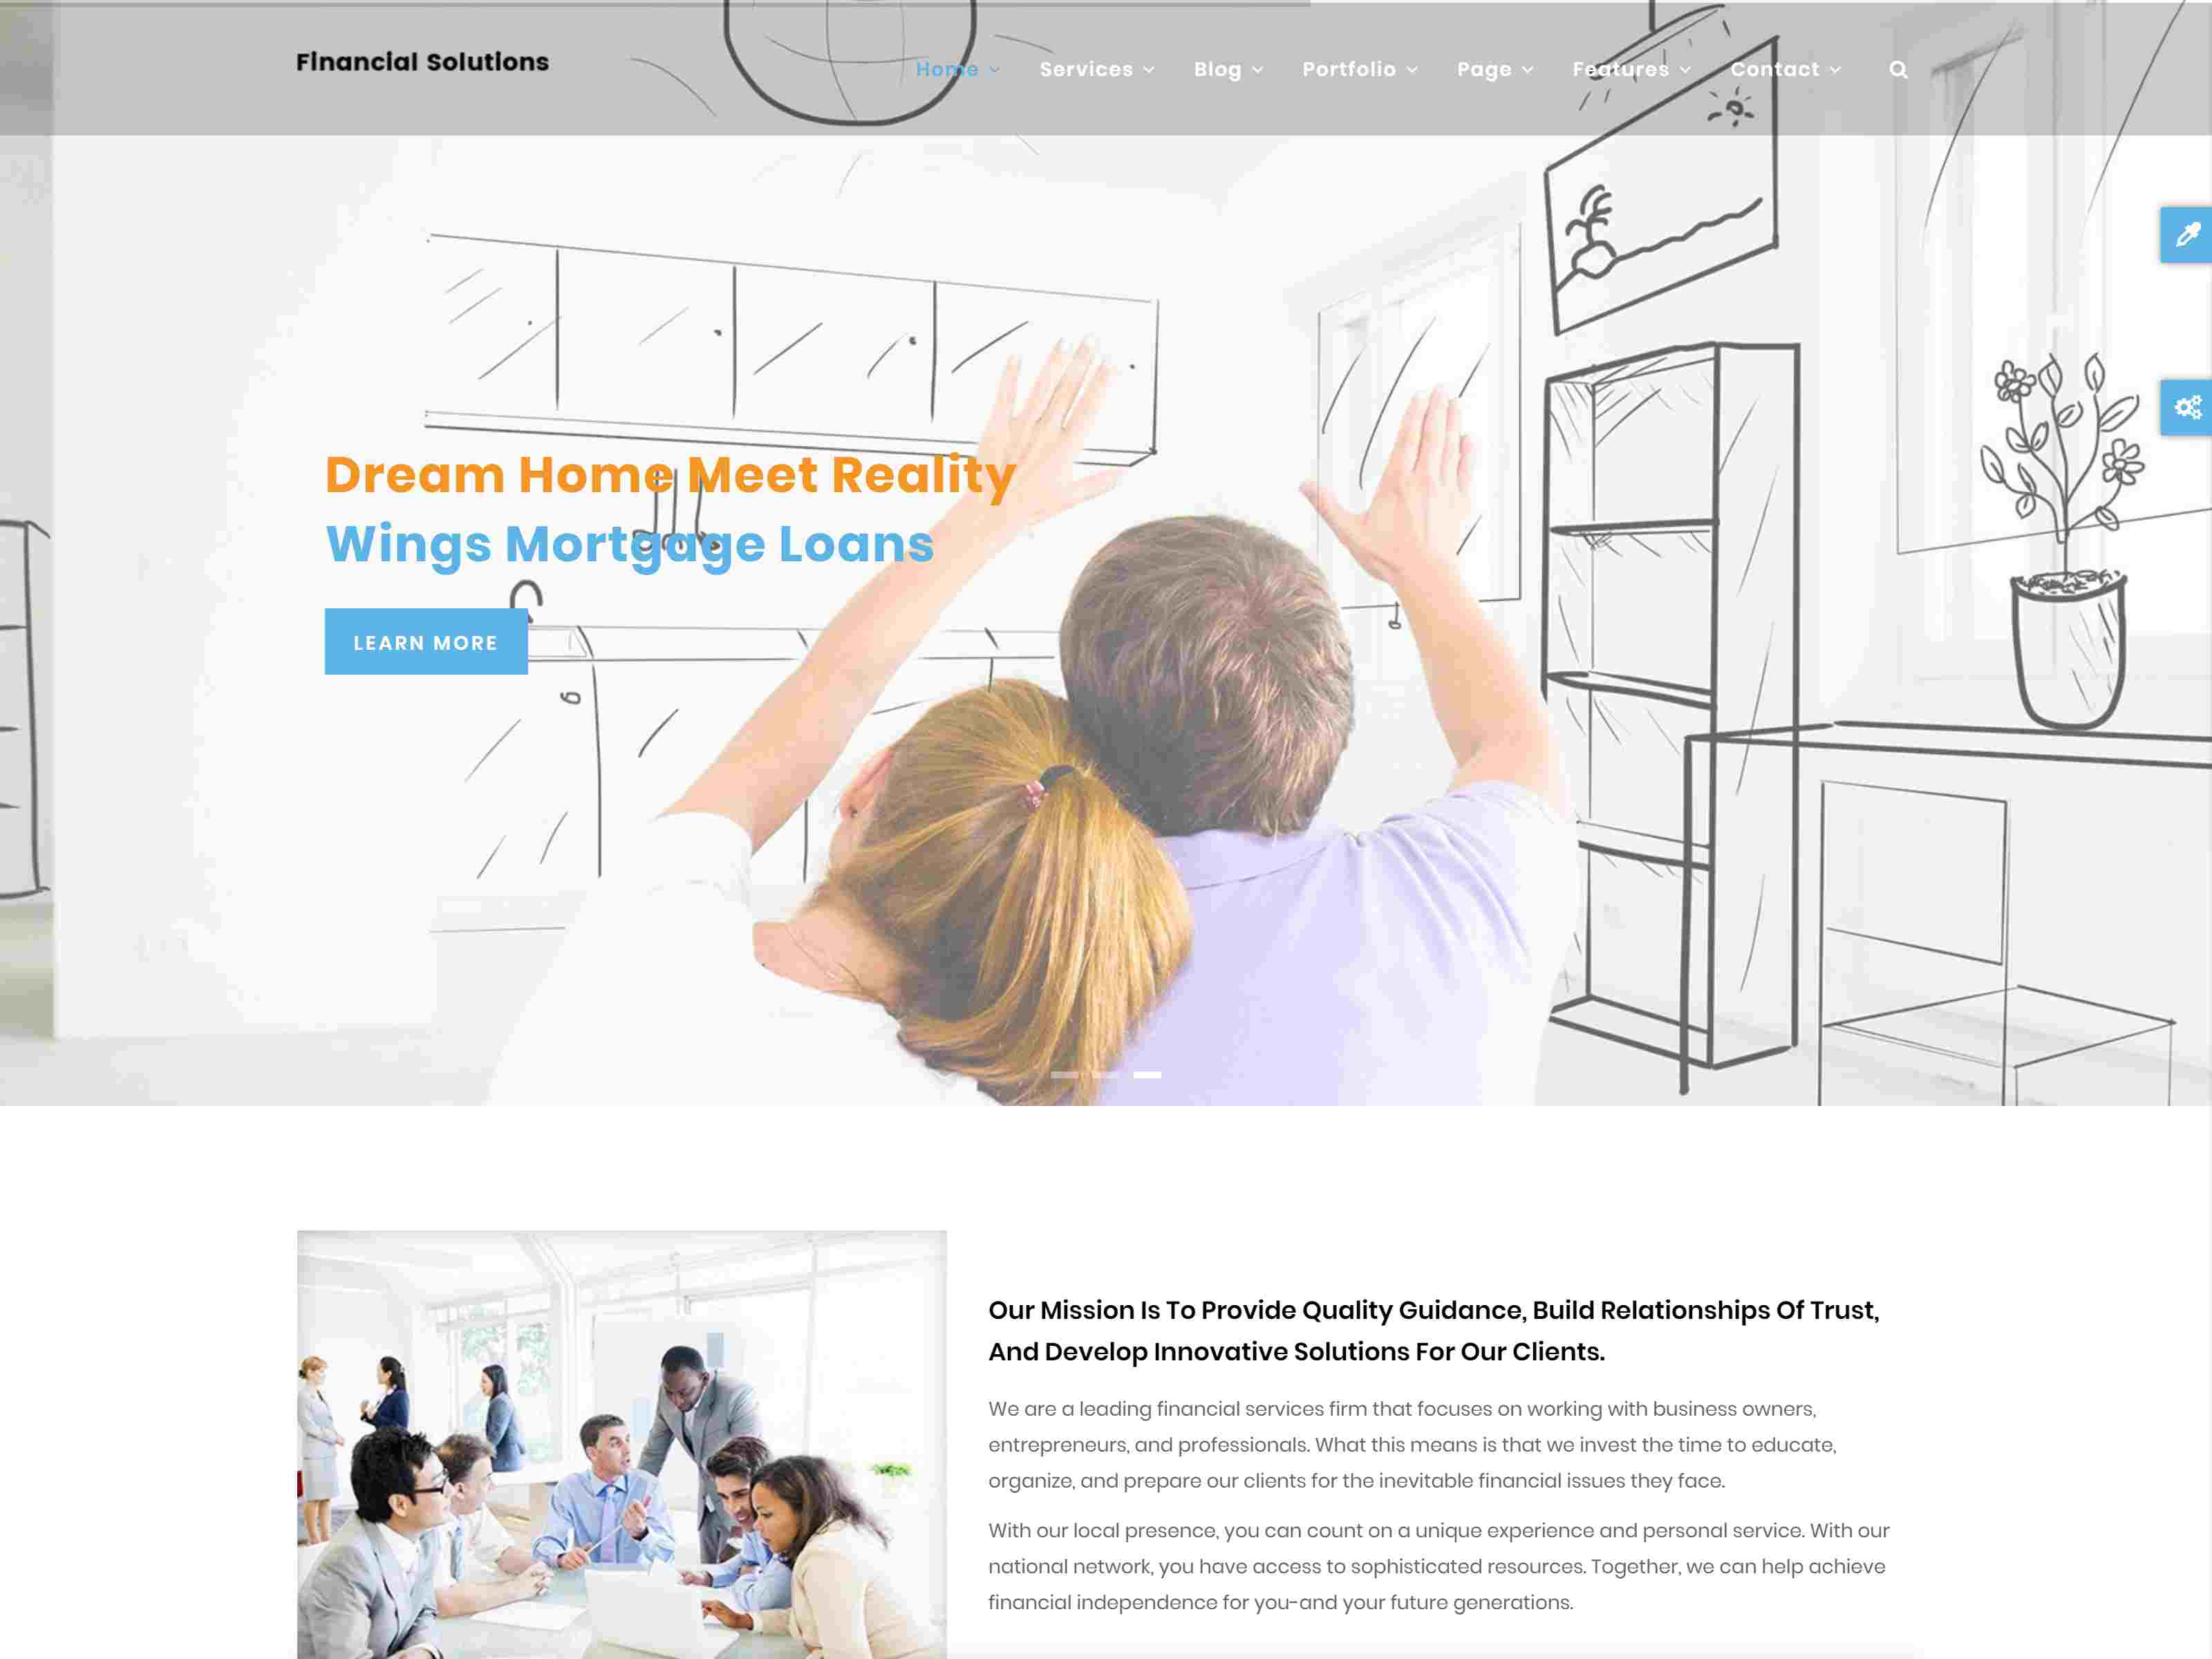 Fi Solutions - Financial & Business Drupal 8.7 Theme